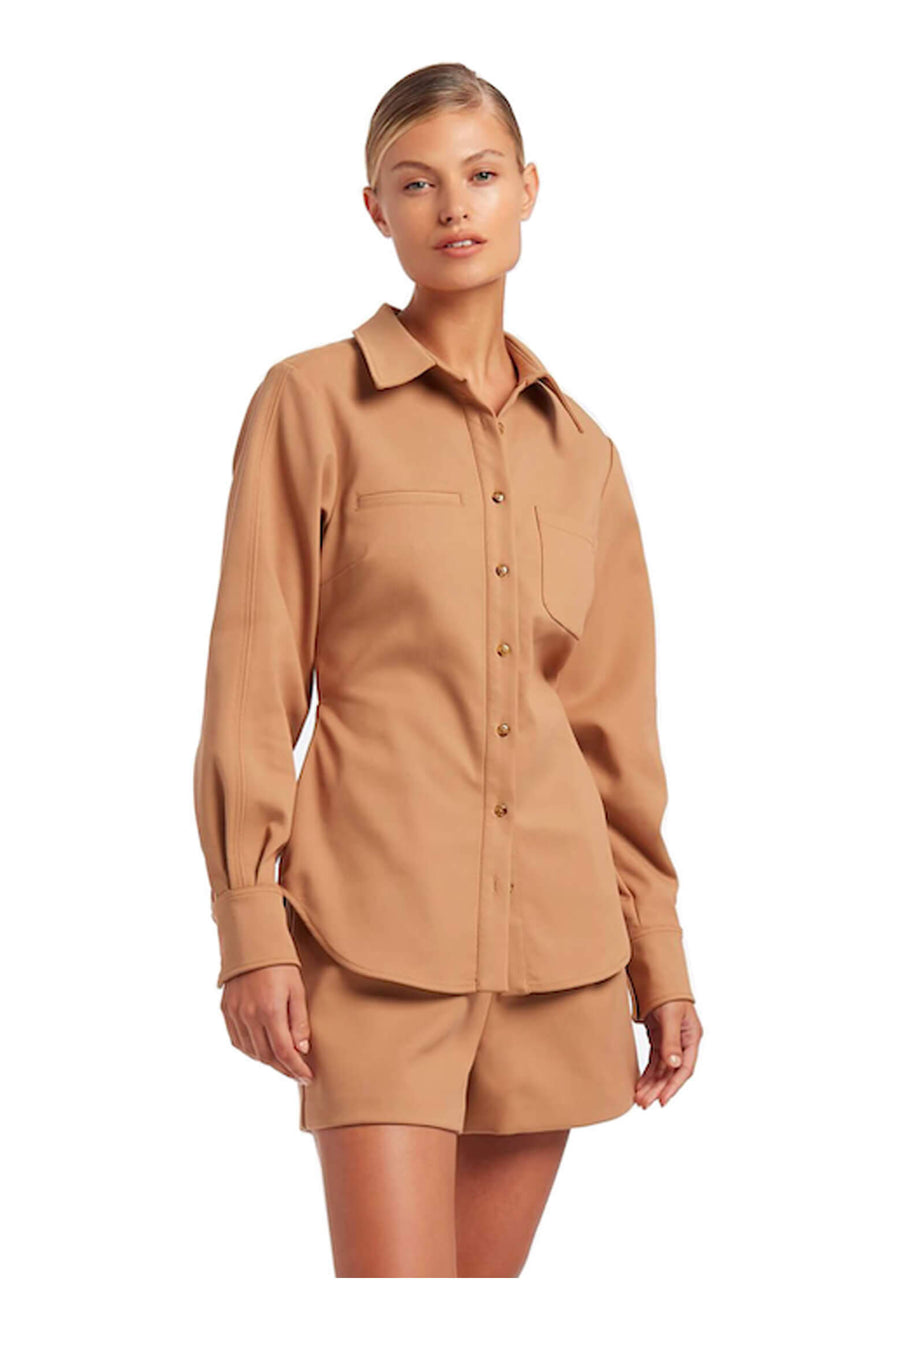 Sir The Label Andre Open Back Shirt in Camel from The New Trend